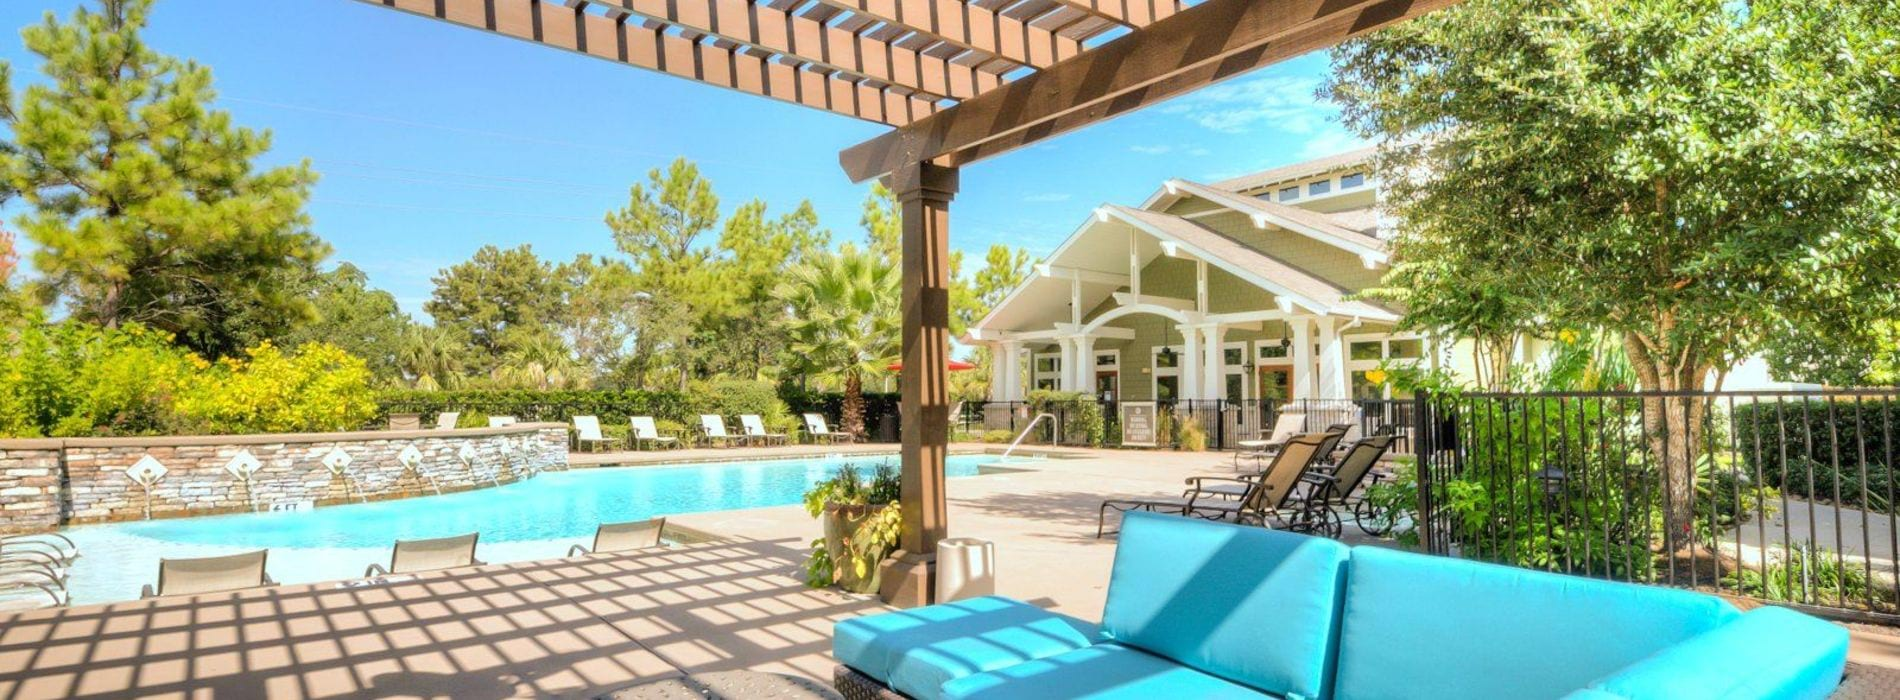 apartments for rent in houston tx newport on the lake home